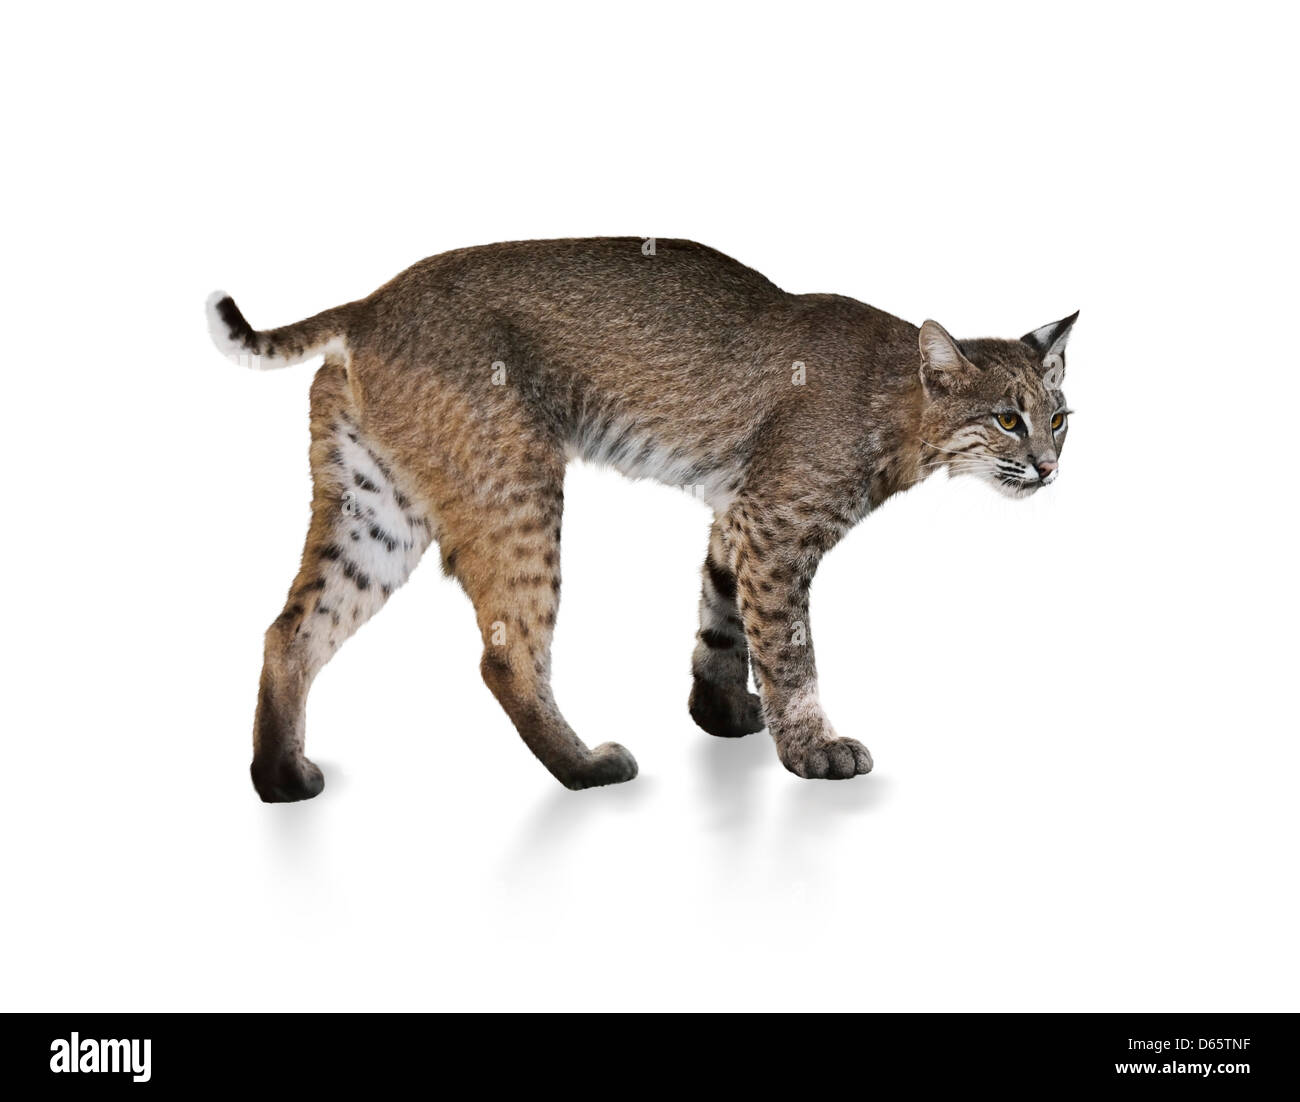 A Young Bobcat On White Background Stock Photo